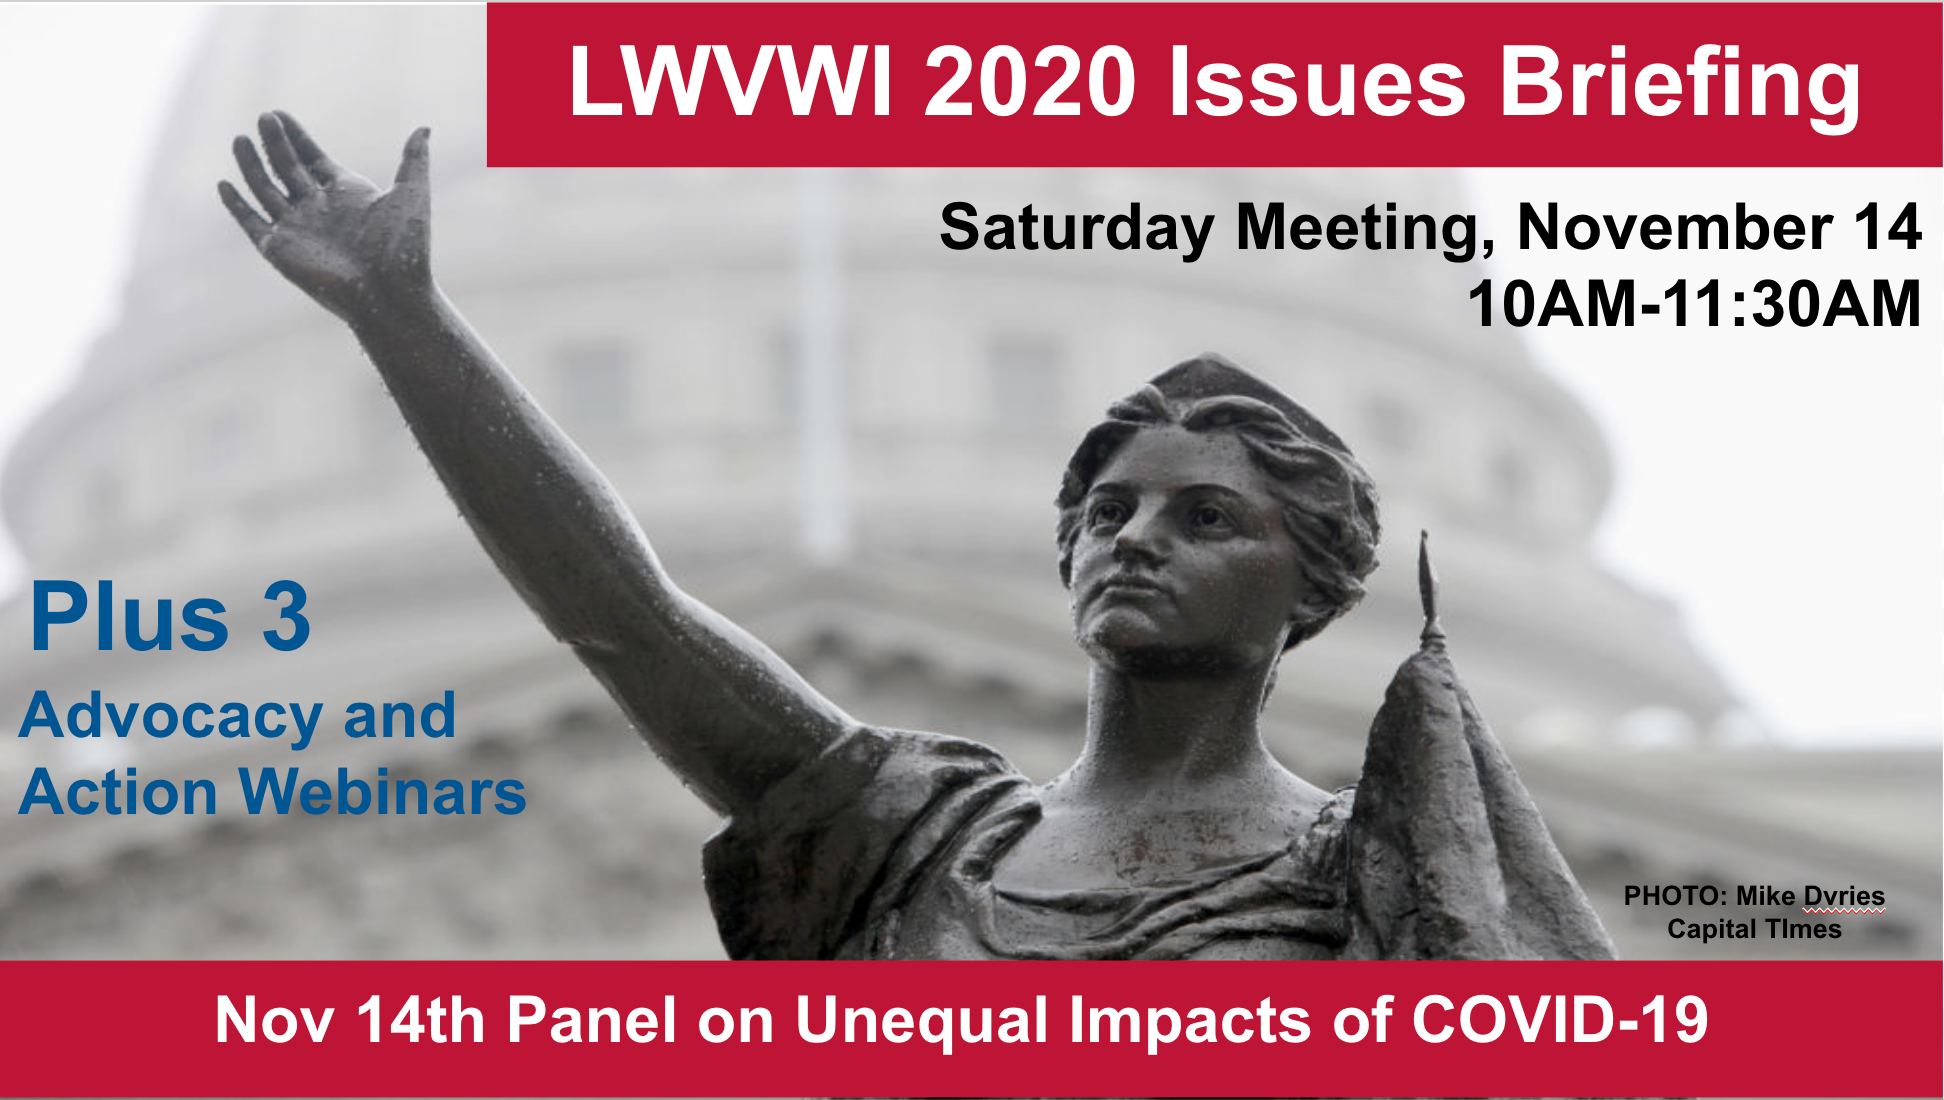 """Graphic of the Lady Forward statue in the background and text in front: """"LWVWI Issues Briefing. Saturday Meeting, November 14, 2020. 10AM-11:30AM. Plus 3 League in Action and Advocacy webinars. Nov 14th Panel on Unequal Impacts of COVID-19."""""""